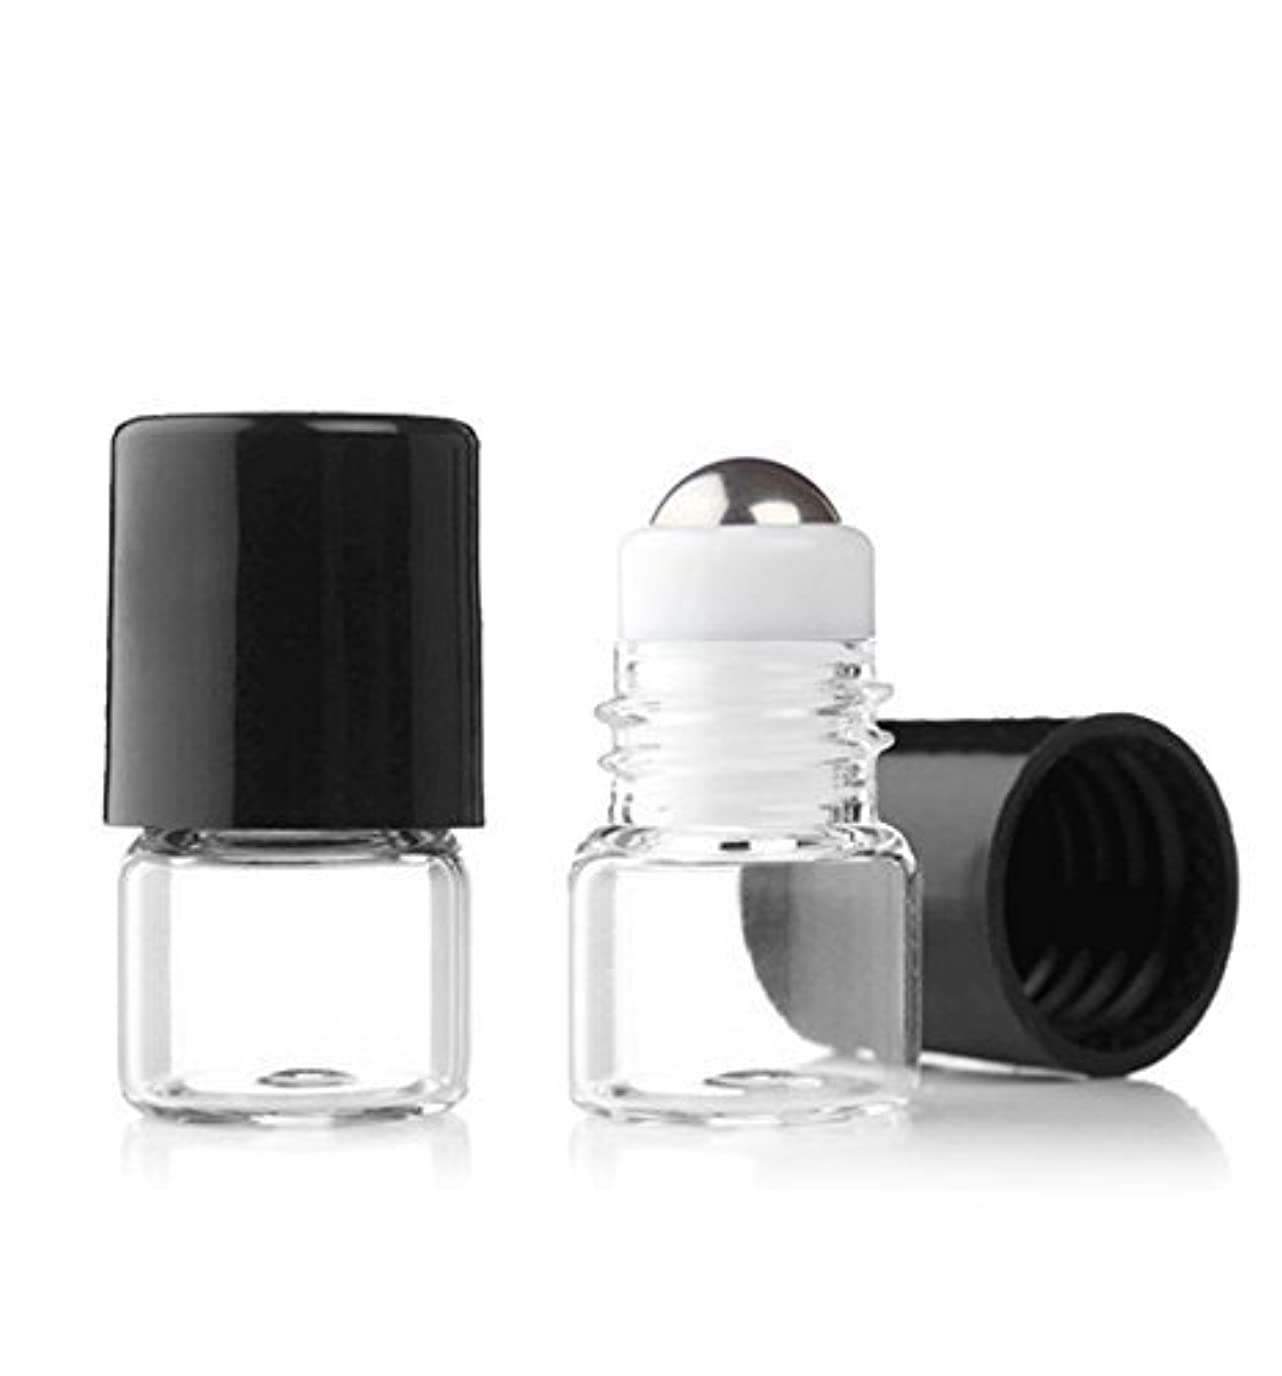 アクセス困ったブランチGrand Parfums Empty 1ml Micro Mini Rollon Dram Glass Bottles with Metal Roller Balls - Refillable Aromatherapy...